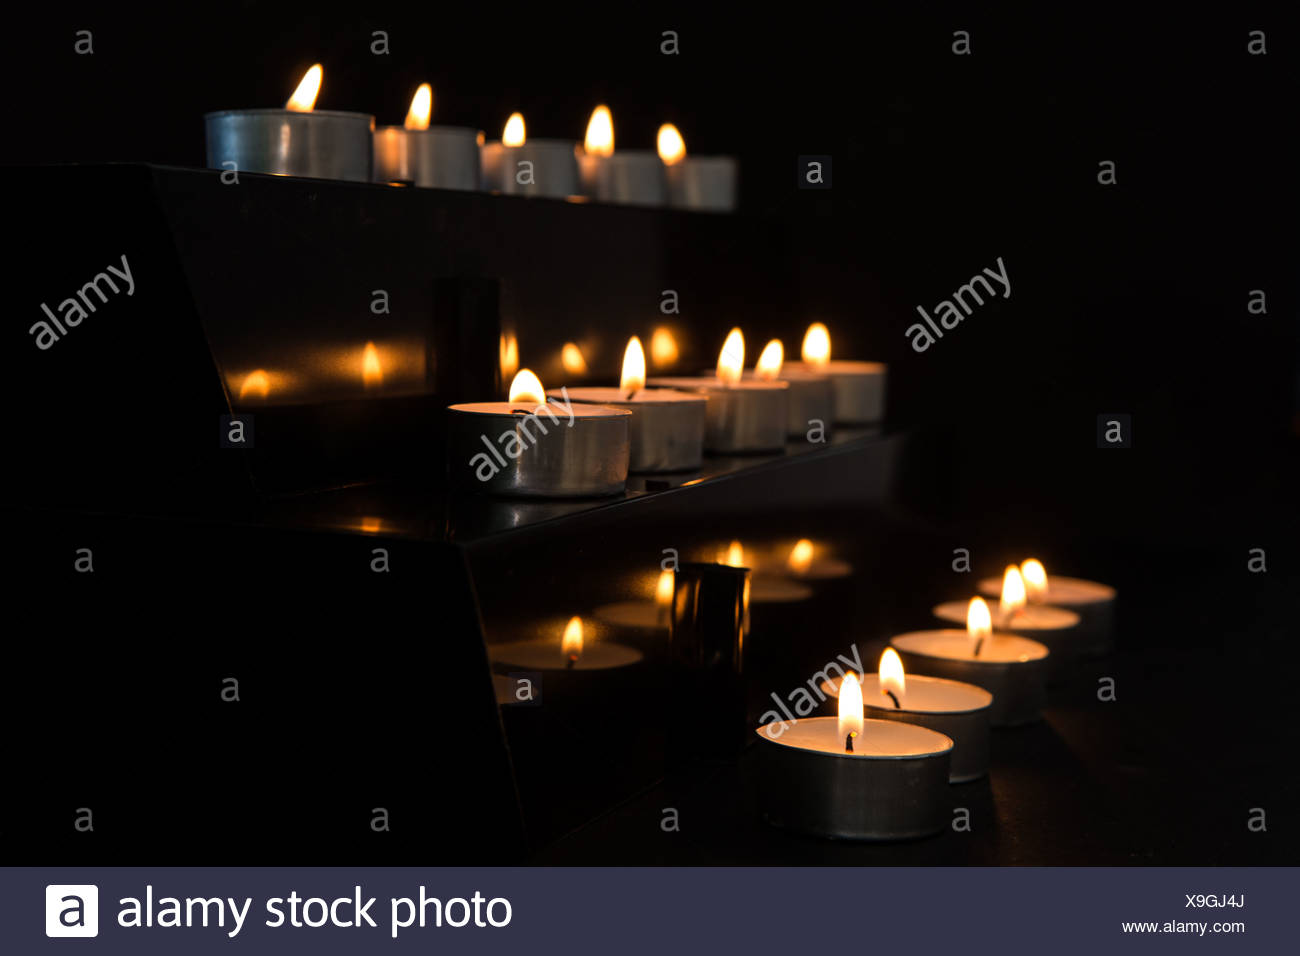 Candles at the alter in the darkness - Stock Image